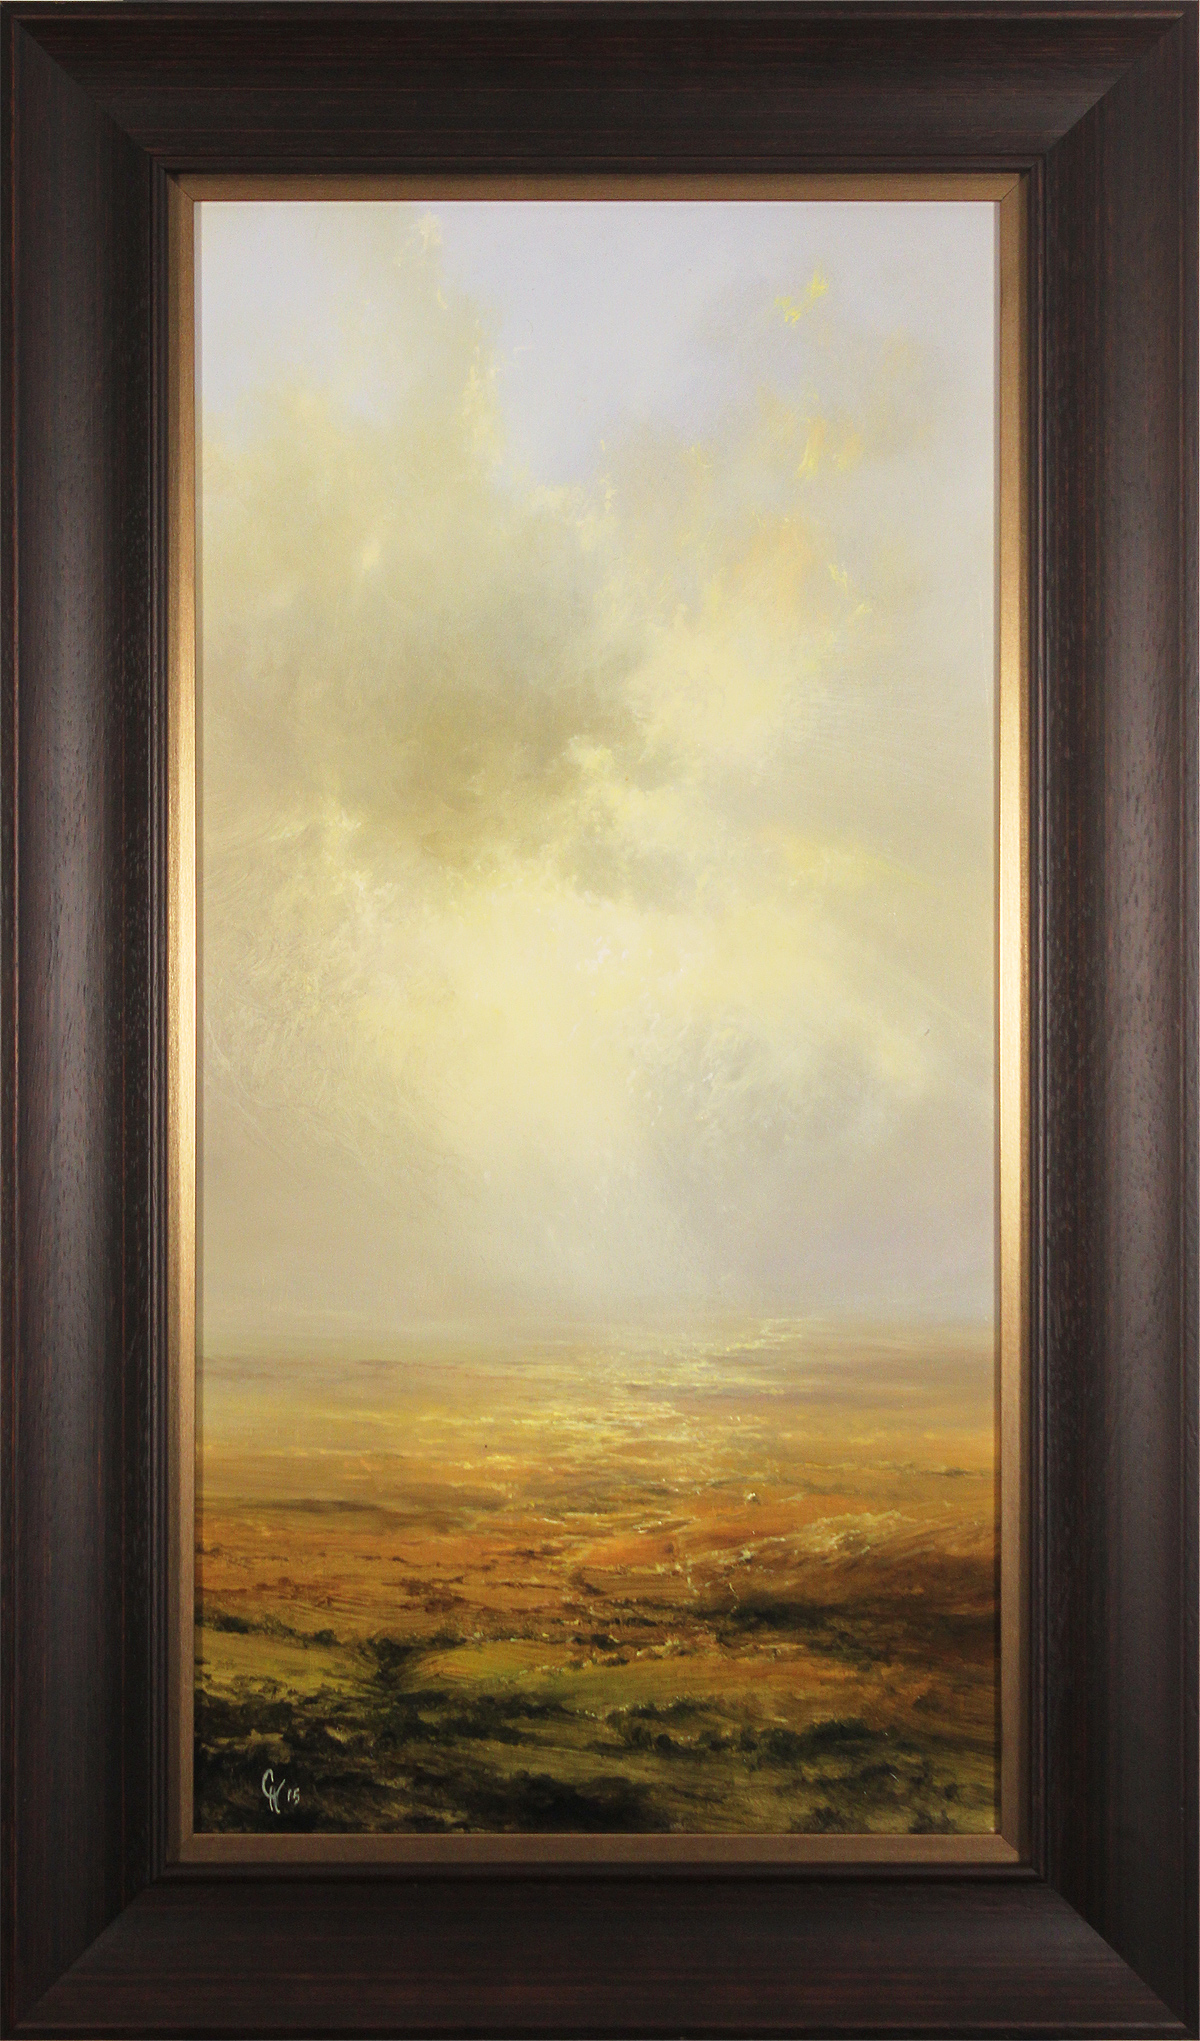 Clare Haley, Original oil painting on panel, Endless Moorland Click to enlarge